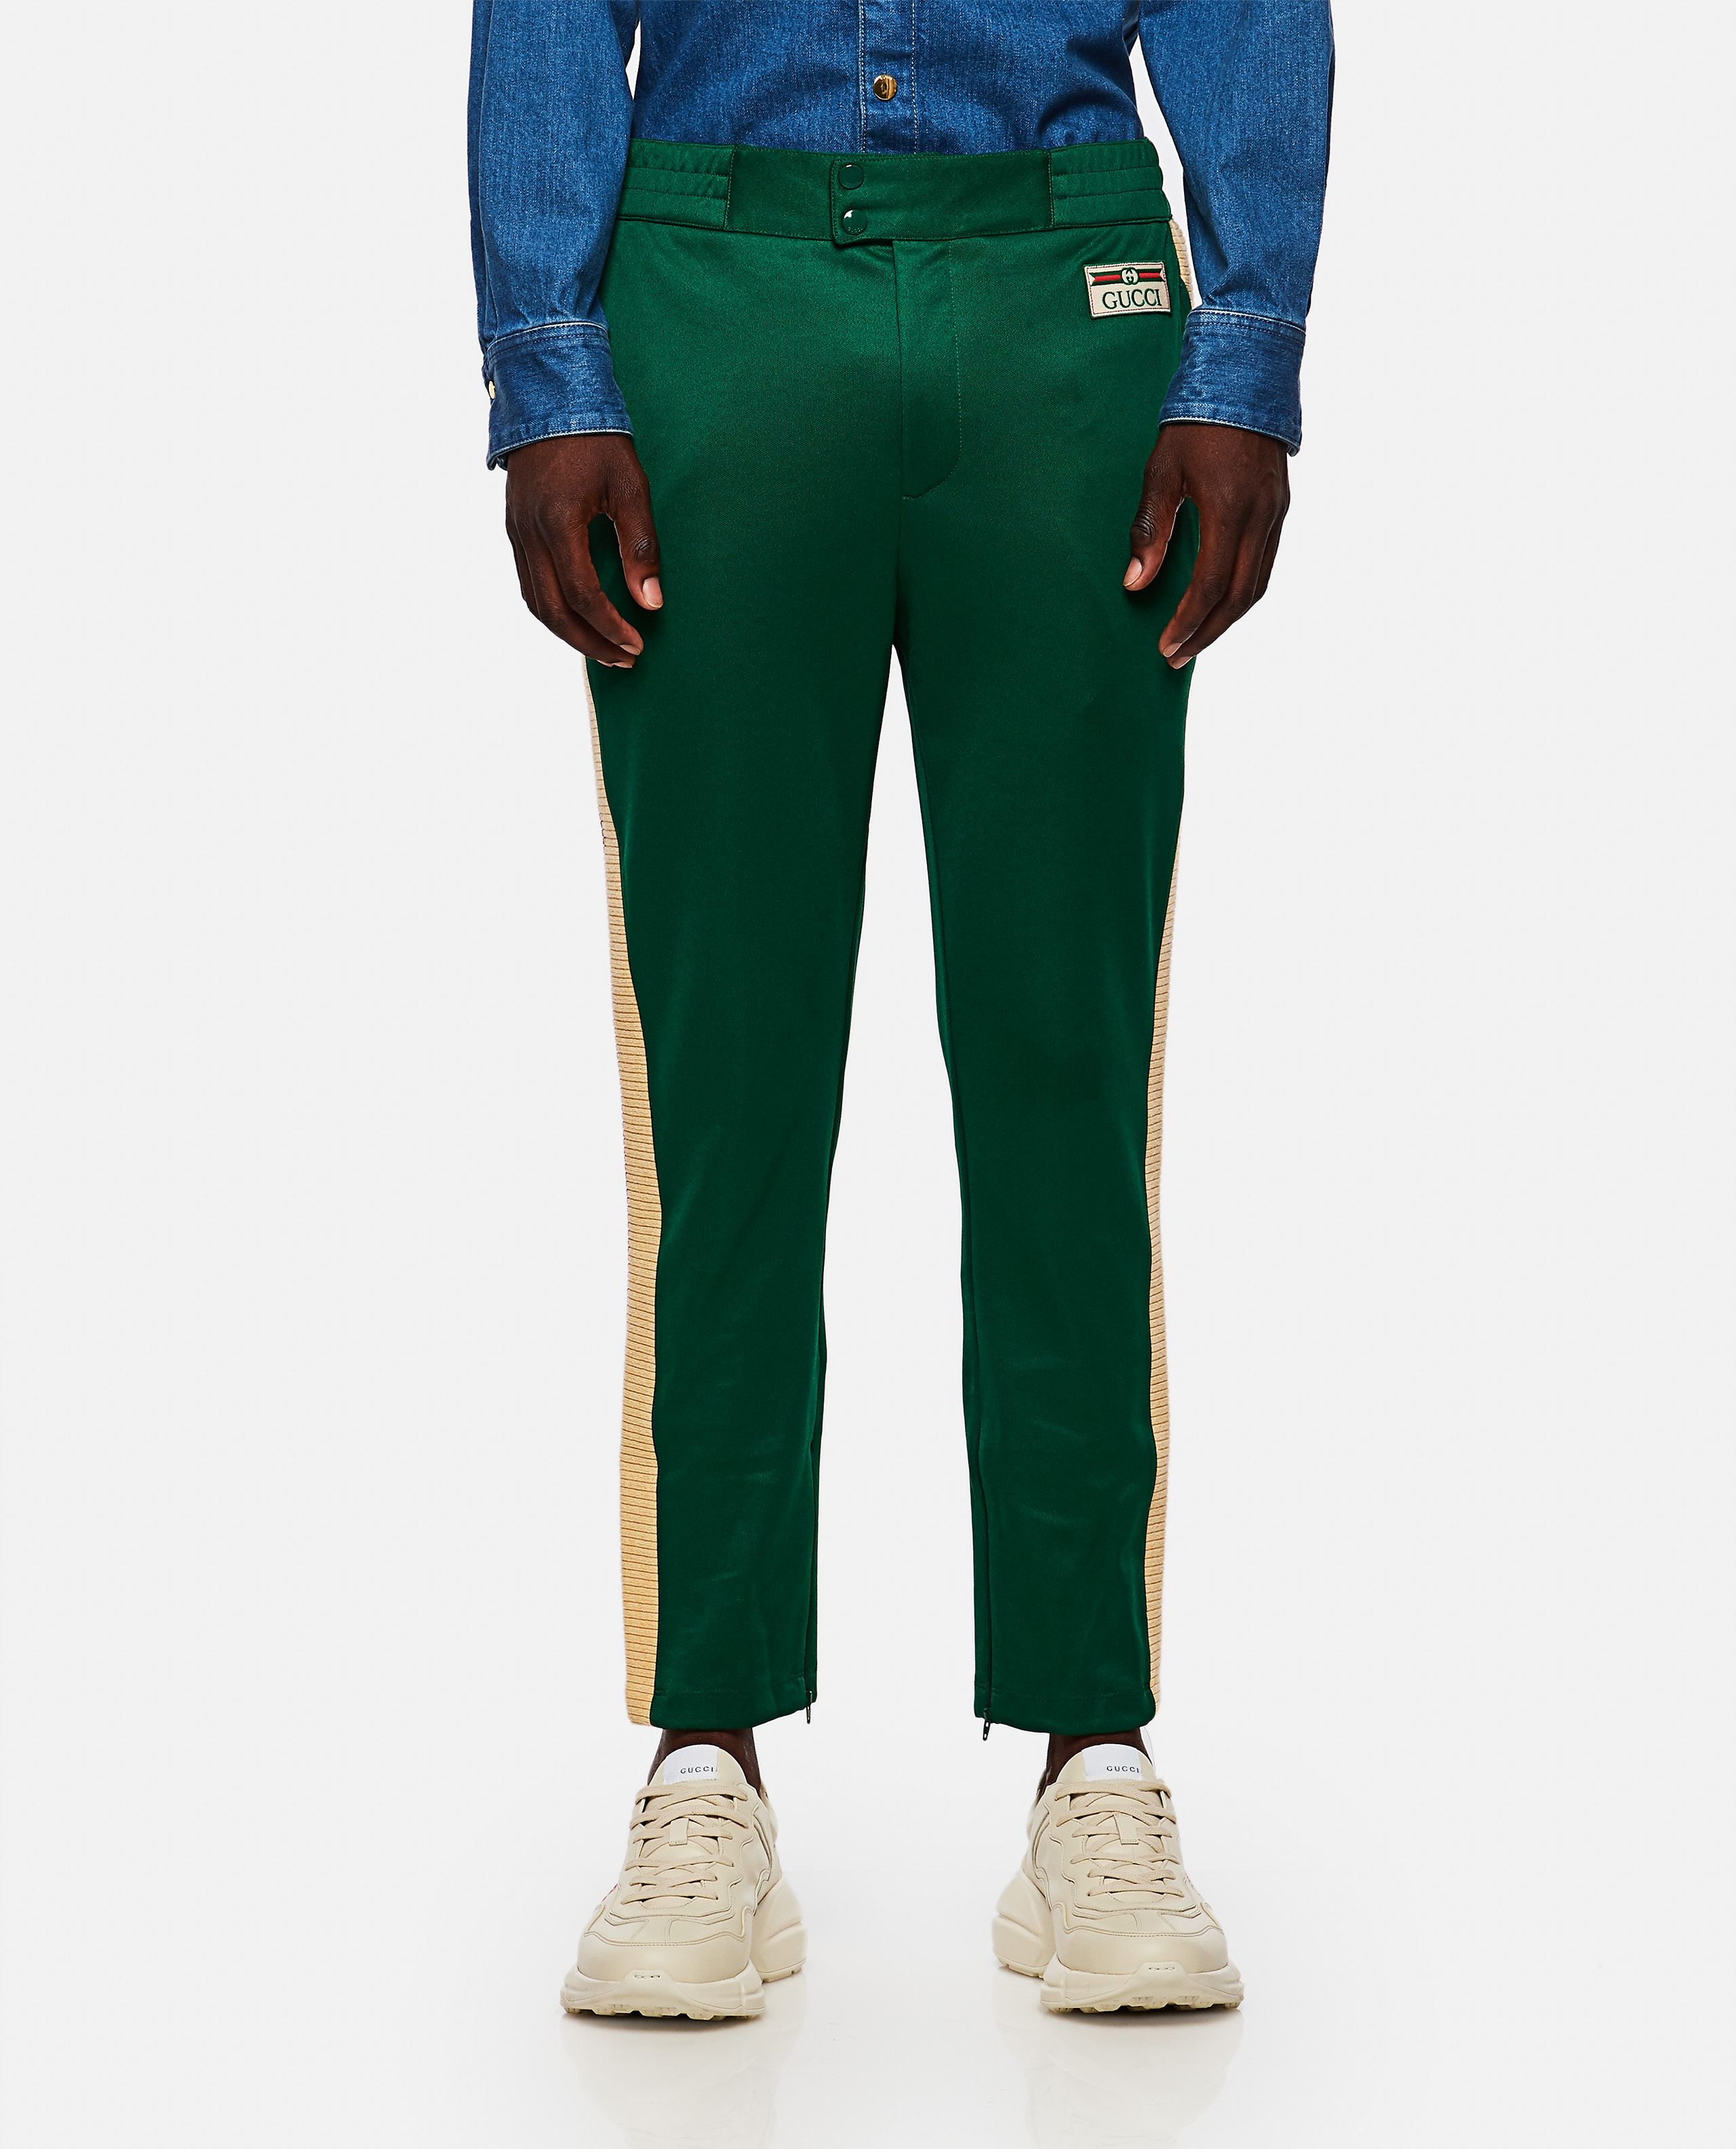 Jogging trousers in technical jersey Men Gucci 000267620039483 1